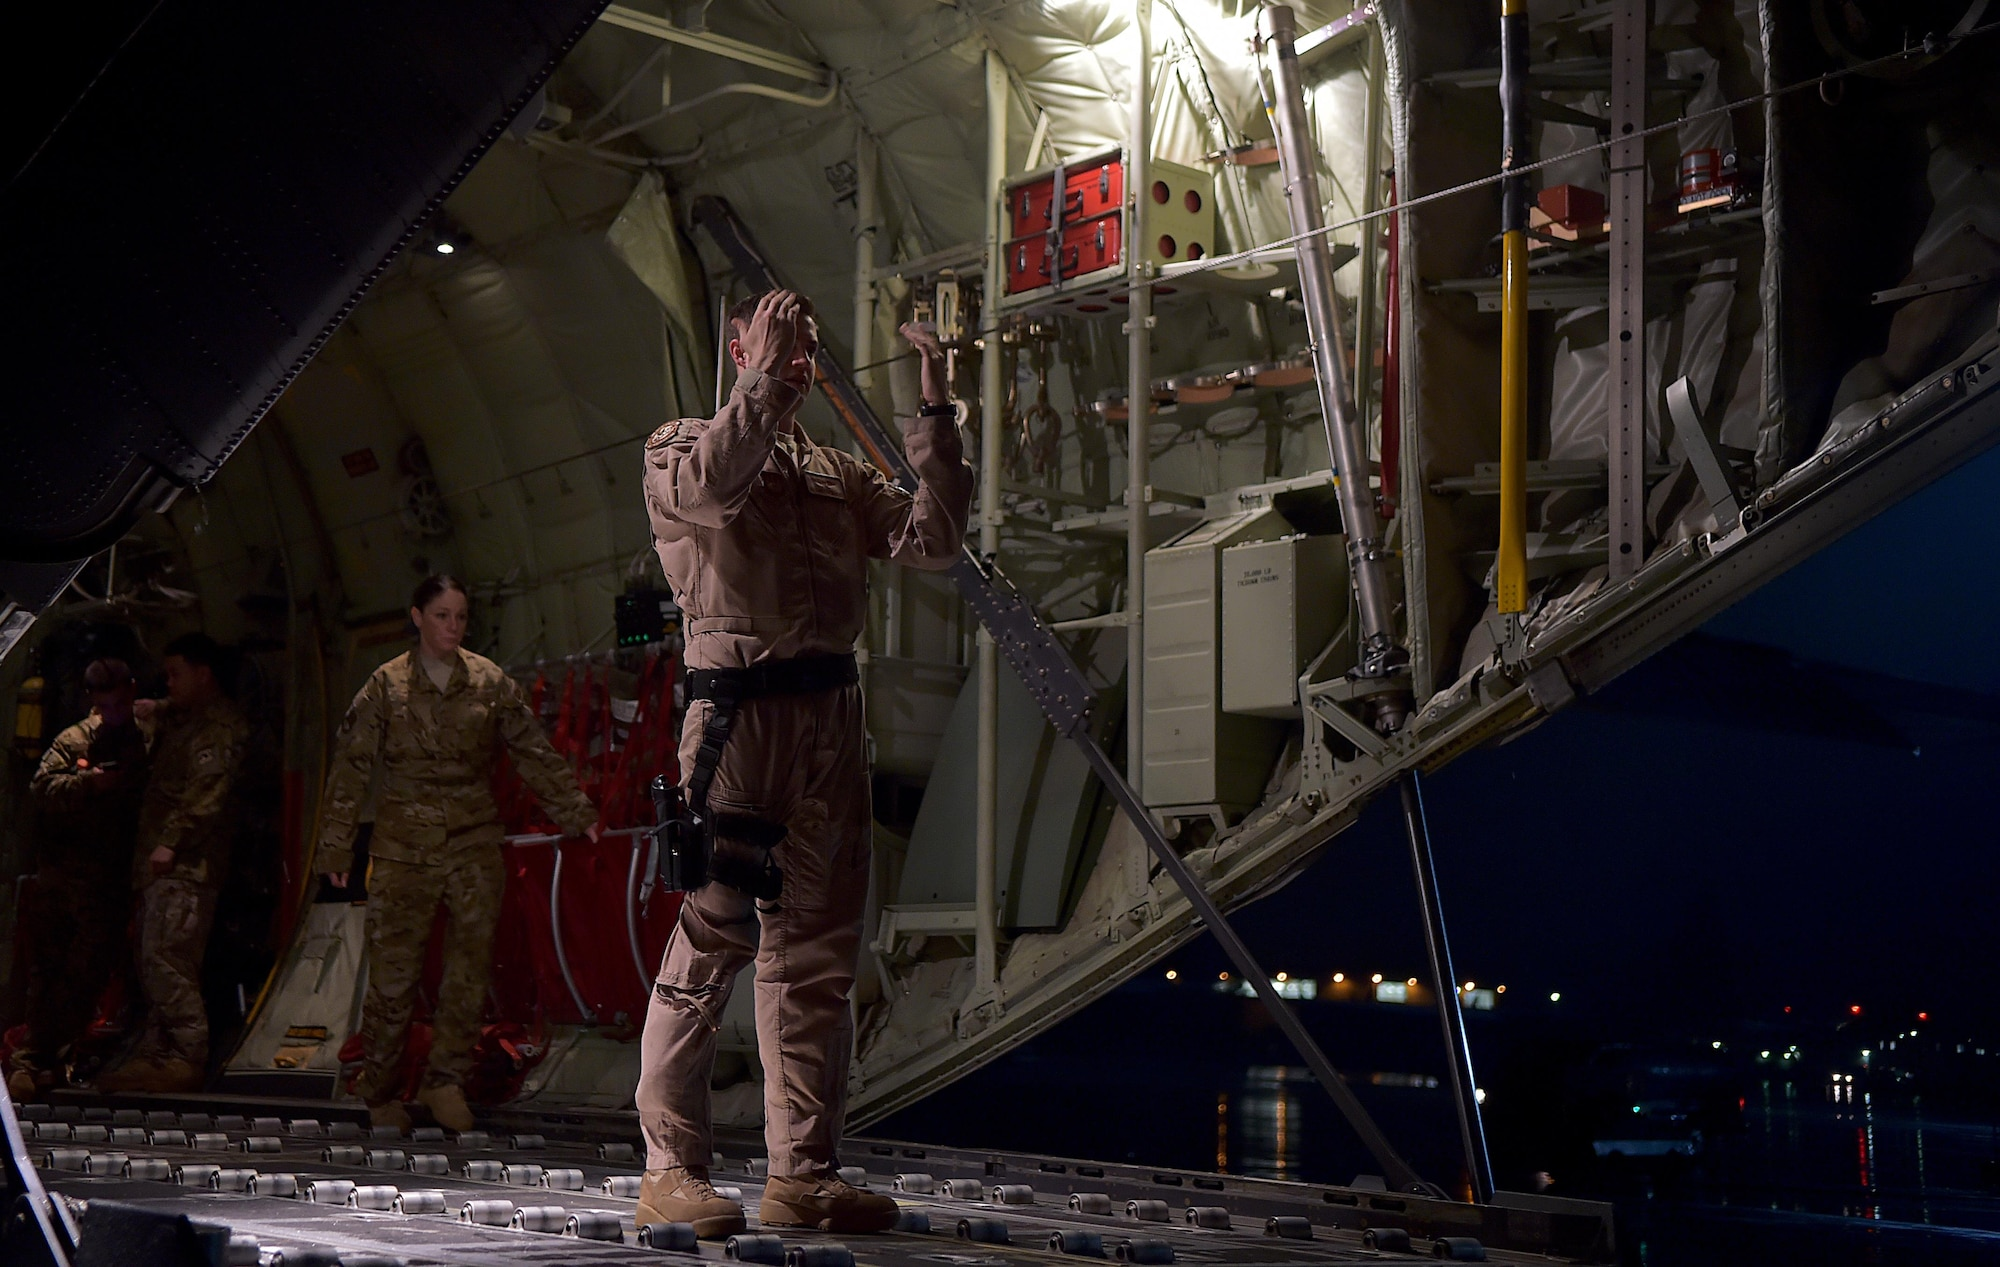 Senior Airman Christian McDevitt leads a cargo loader to a C-130J Super Hercules prior to a mission in support of the Ebola virus epidemic Oct. 7, 2014, at Ramstein Air Base, Germany. U.S. Africa Command is working in support of the U.S. Agency for International Development, the lead federal agency, as part of a comprehensive U.S. Government effort to respond to and contain the outbreak of the Ebola virus in West Africa as quickly as possible. This was the first C-130J Super Hercules flight launched from Ramstein to Monrovia, Liberia in support of Operation United Assistance. McDevitt is a load master with the 37th Airlift Squadron. (U.S. Air Force photo by/Staff Sgt. Sara Keller)